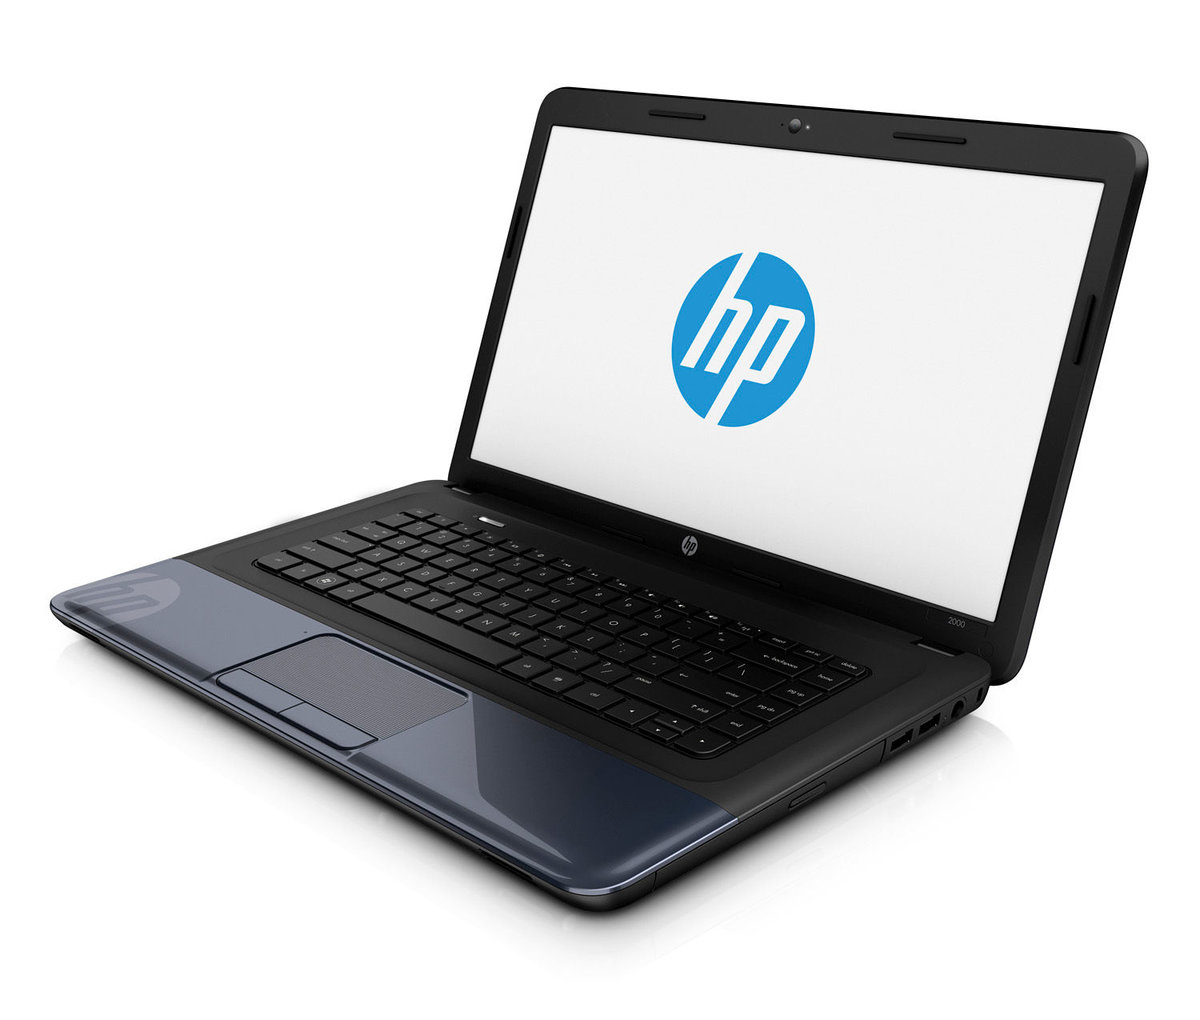 Download Driver: HP 2000-369WM Power Manager